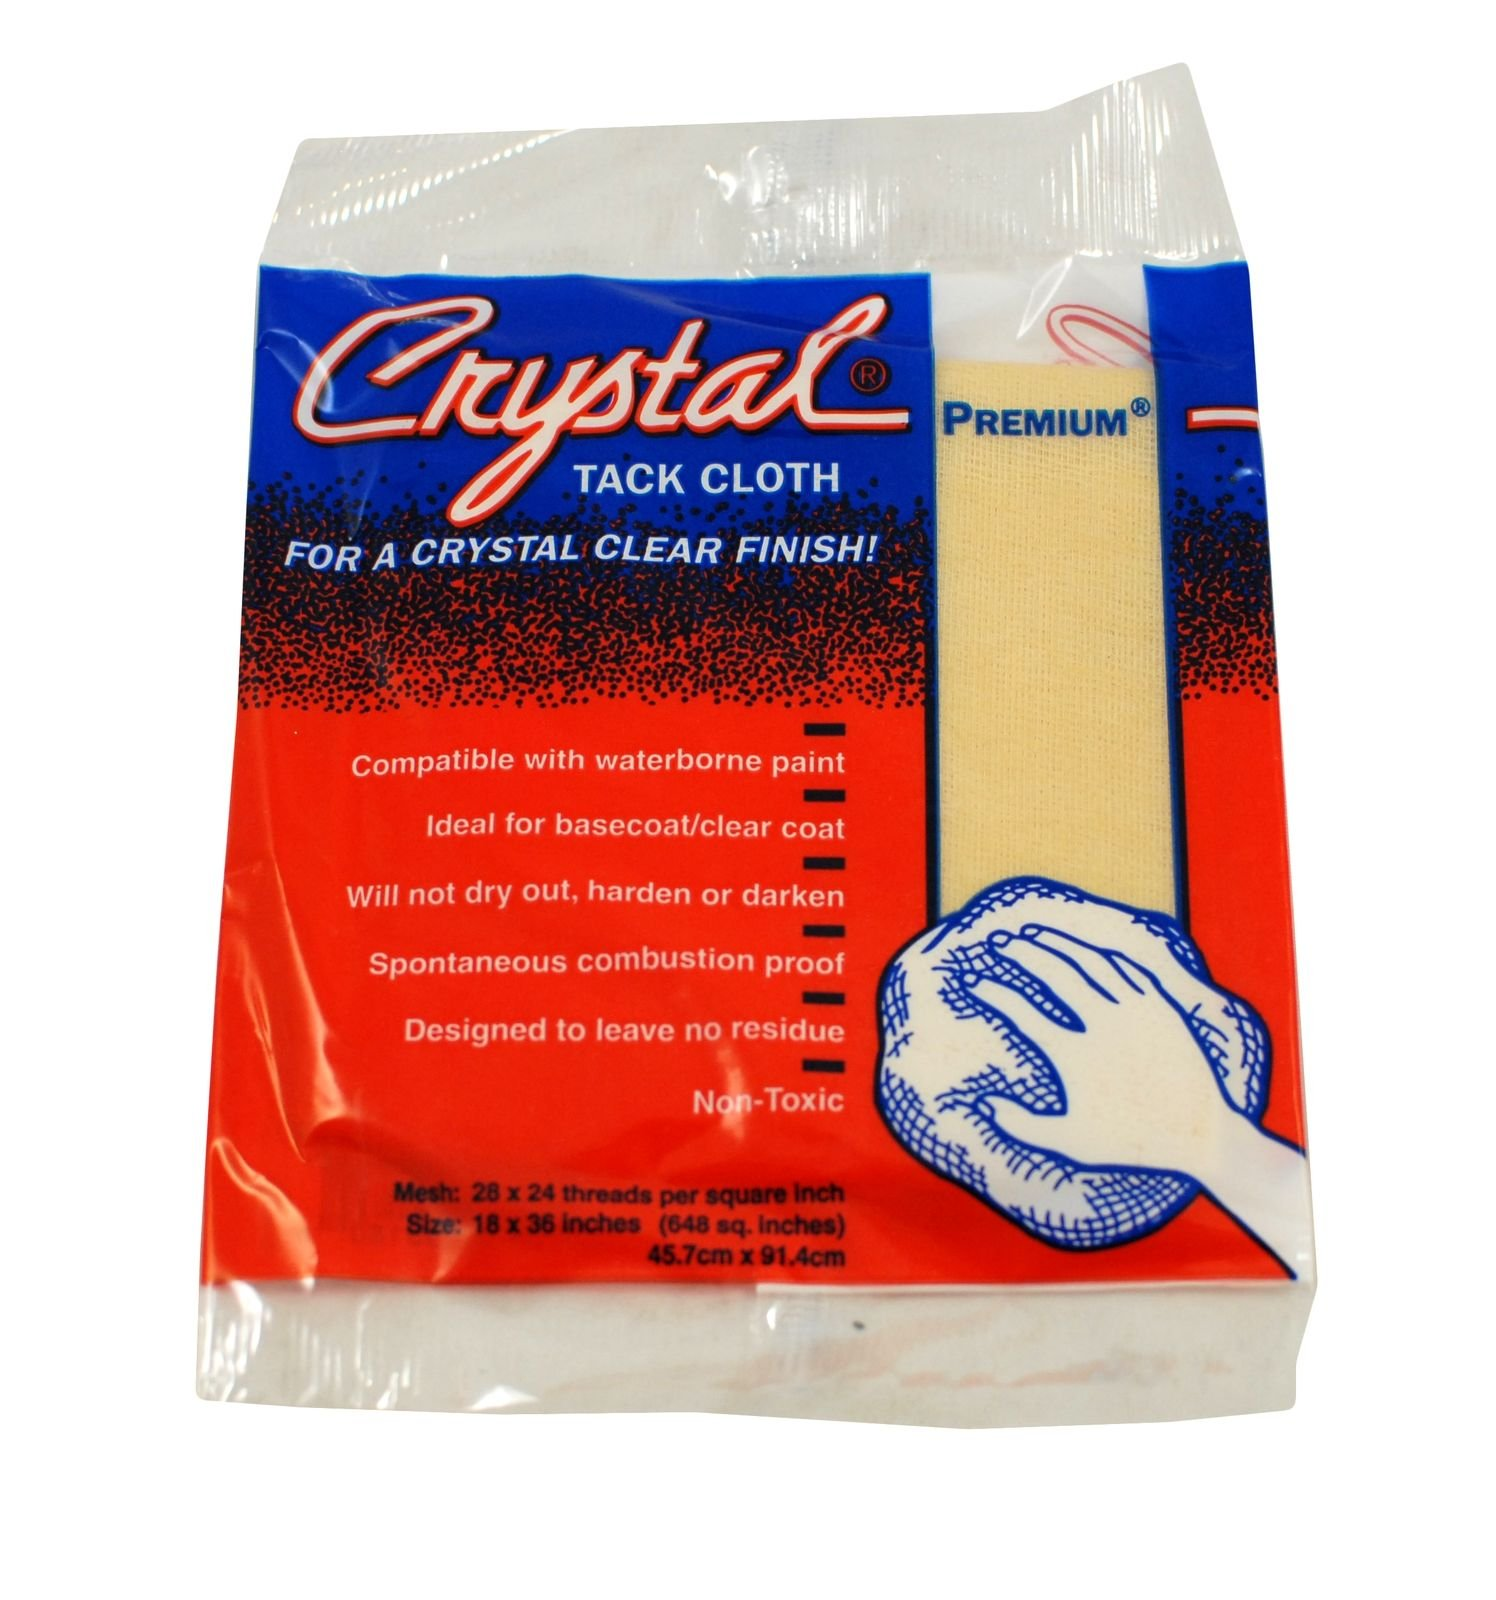 Bond Crystal Tack Cloth Premium (18'' x 36''), Case of 12 Boxes (144 Cloths Total) by Bond Corporation